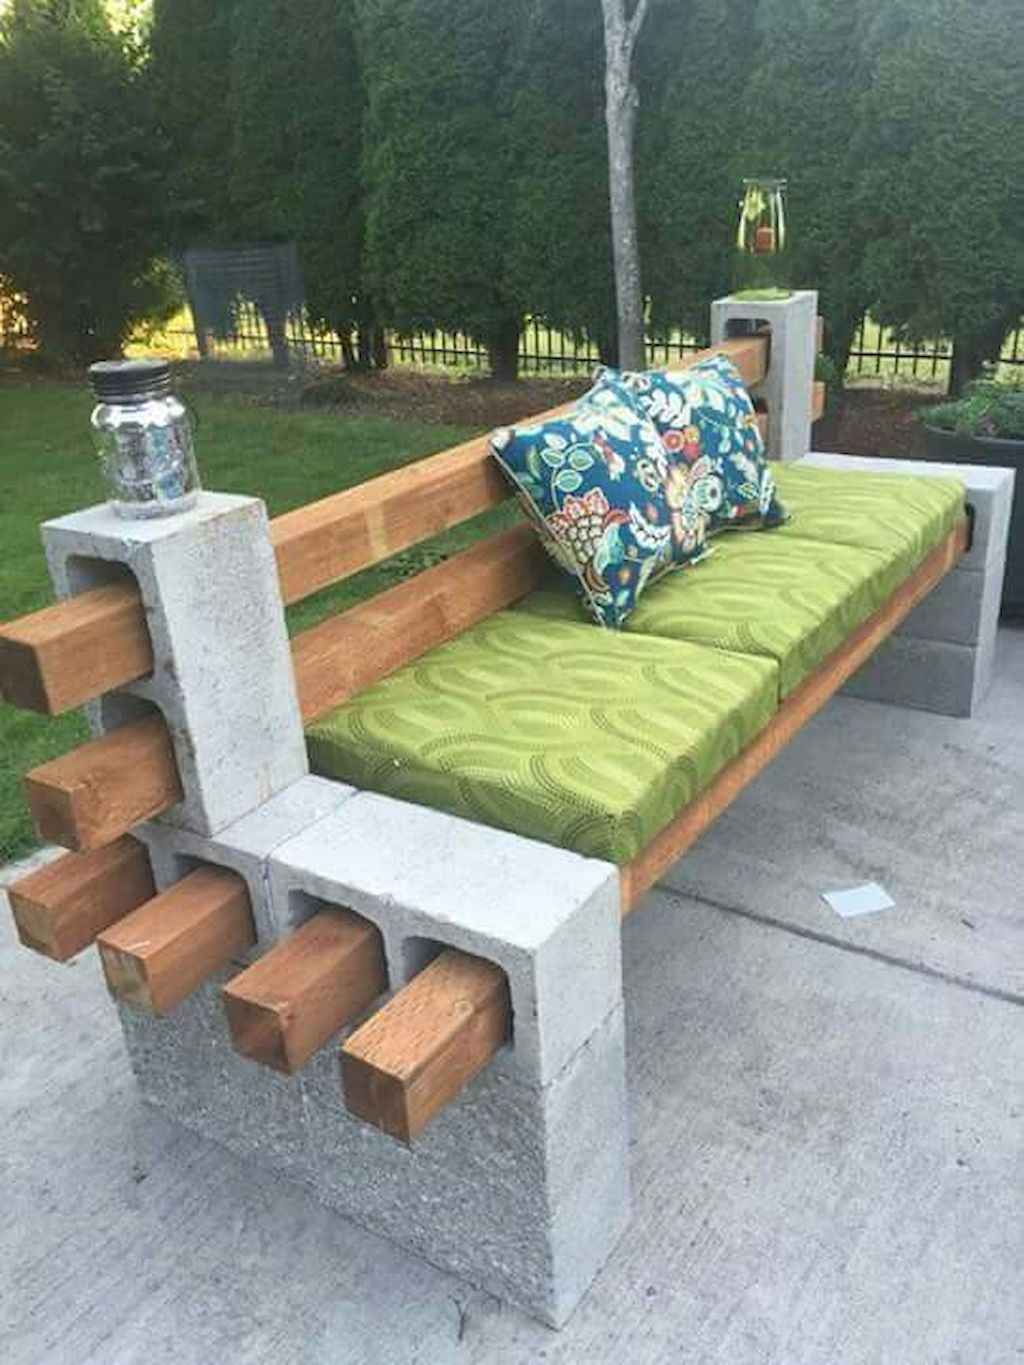 Cleverly diy porch patio decorating ideas (41)